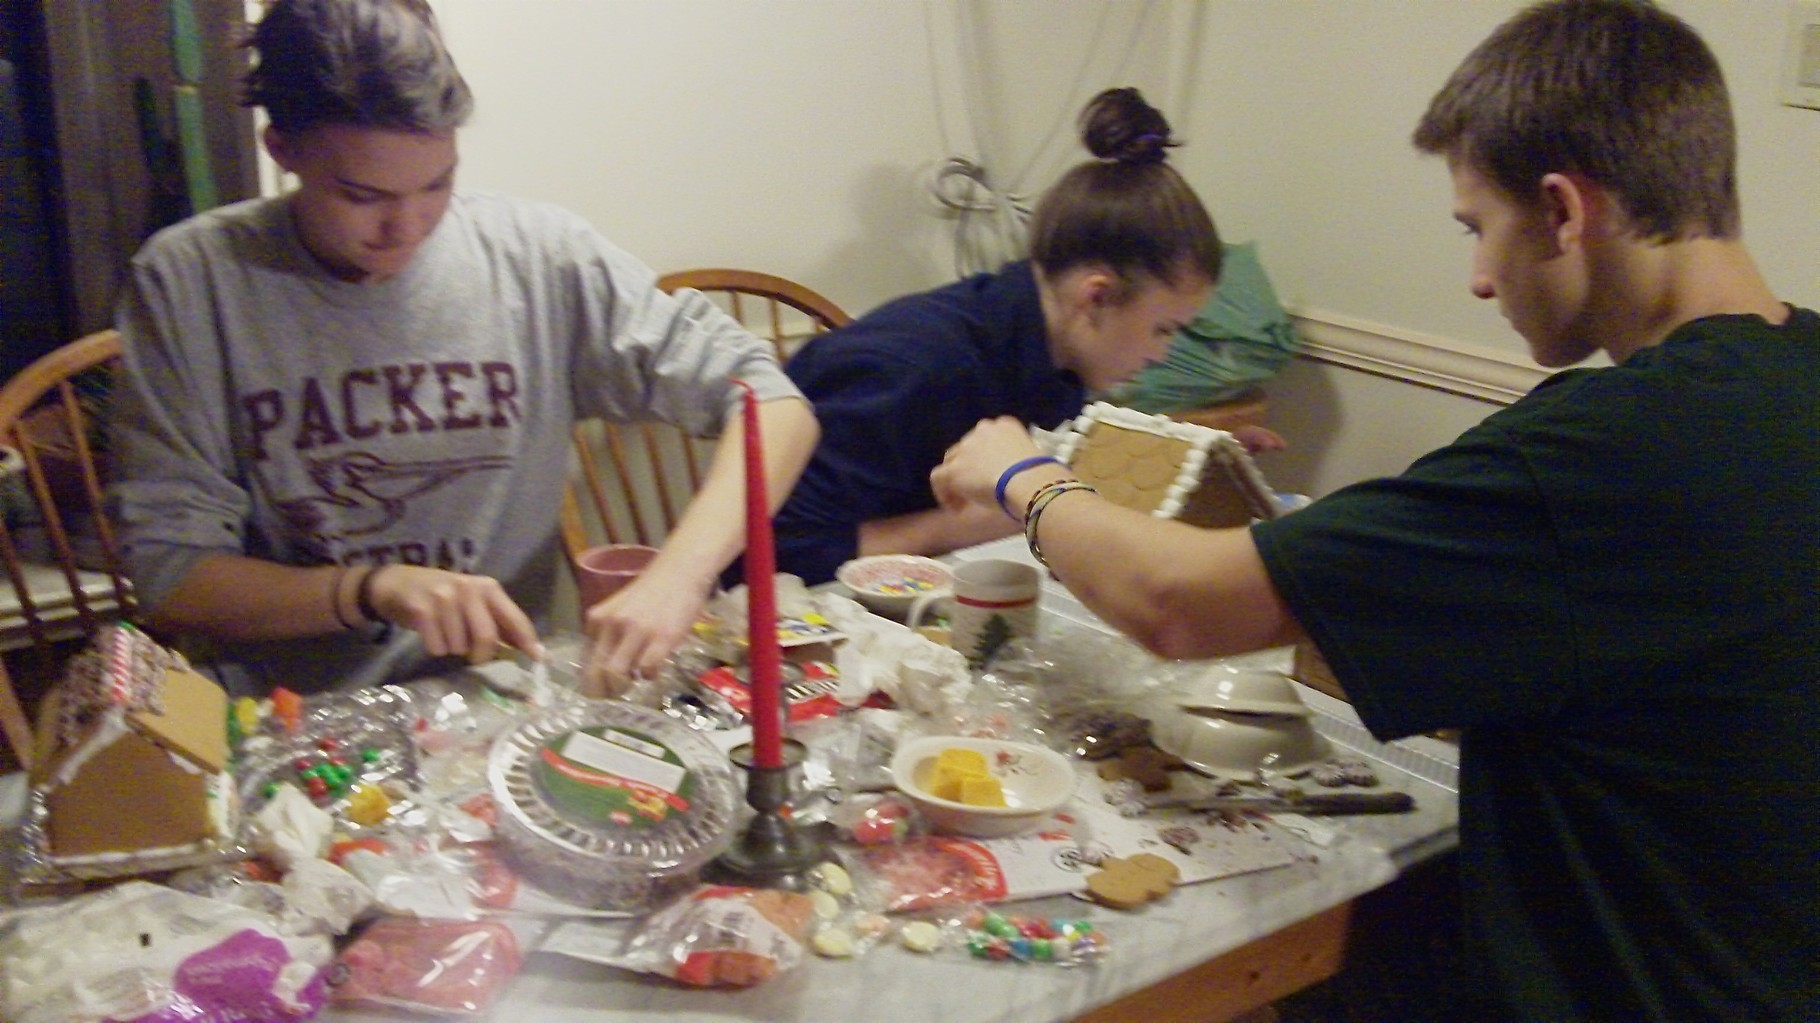 Decorating gingerbread houses....